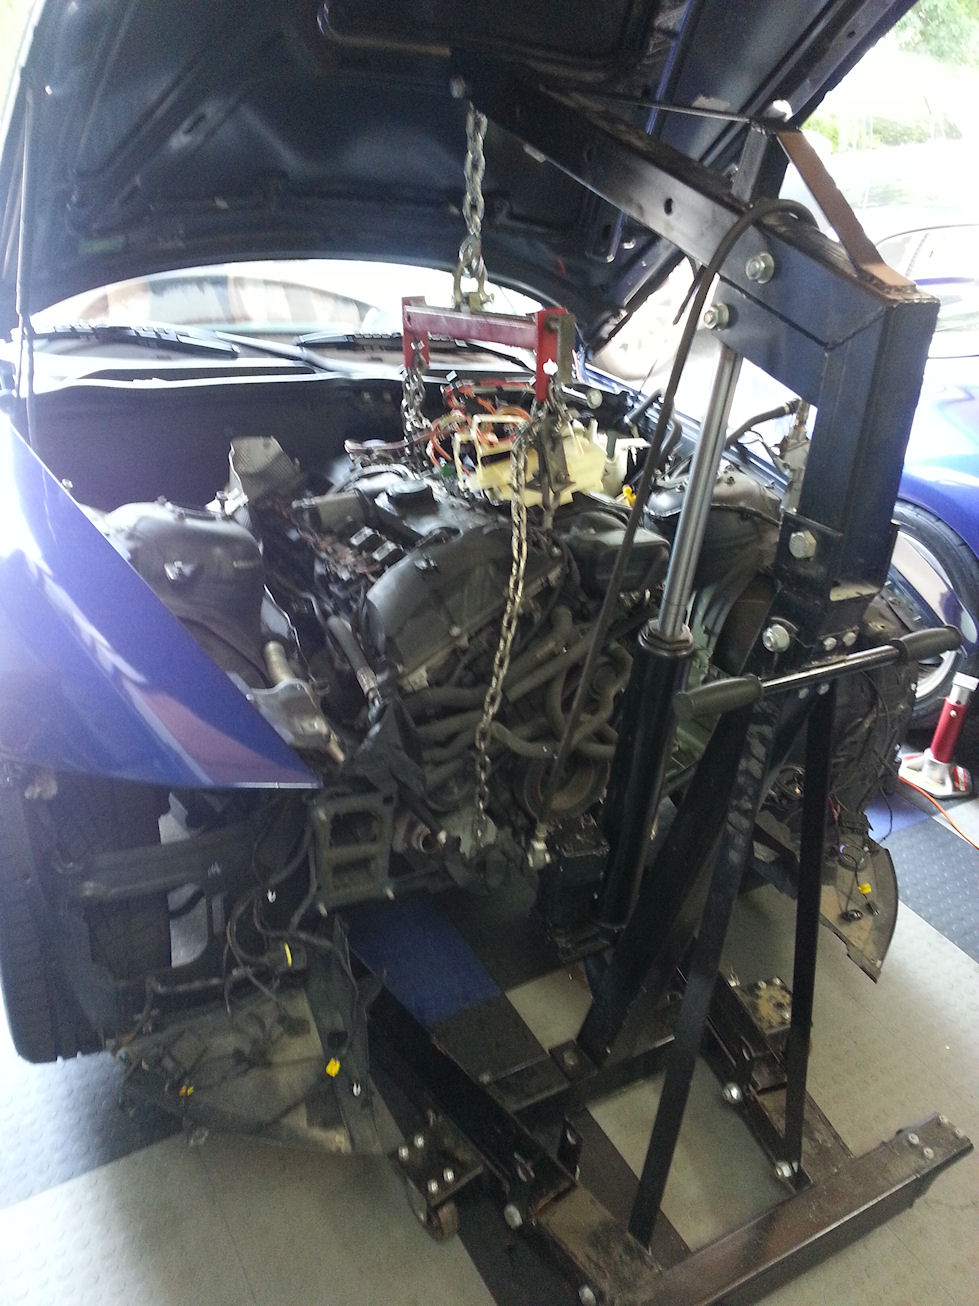 2JZ in a Z4 Coupe - Custom Project